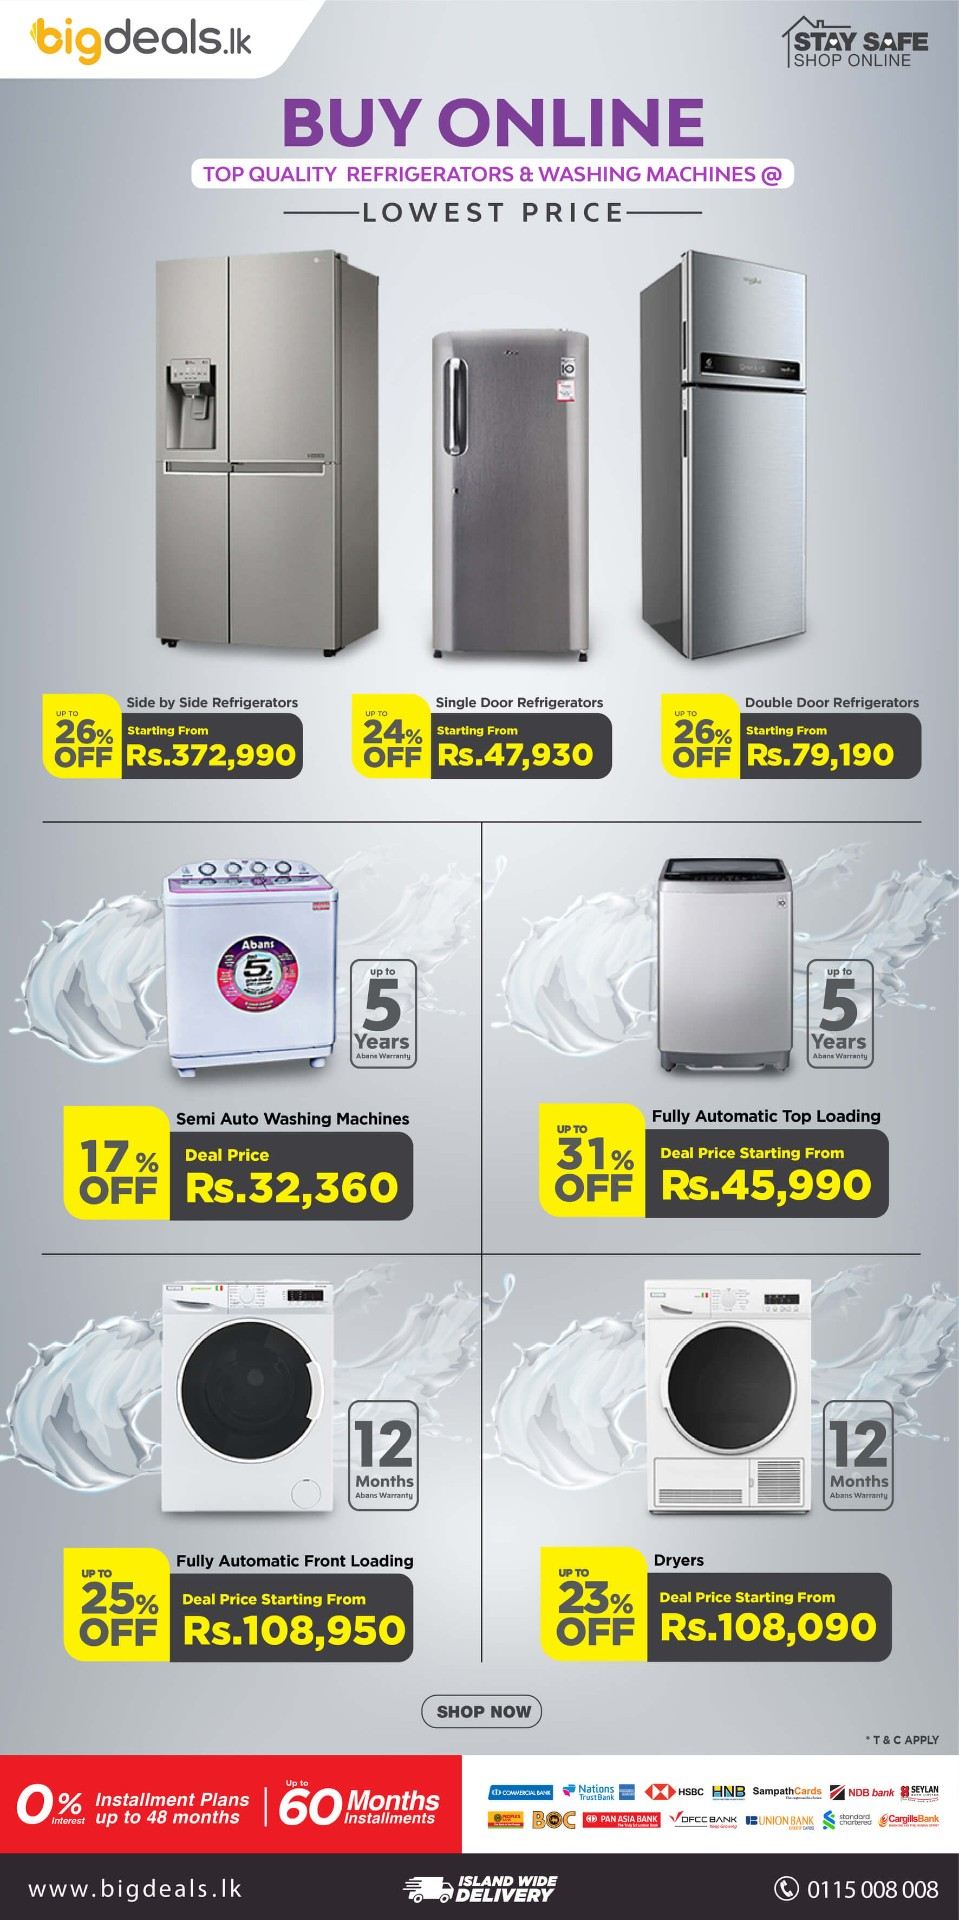 Don't miss this chance to get 26% OFF on Refrigerators and 31% OFF on Washing machines!